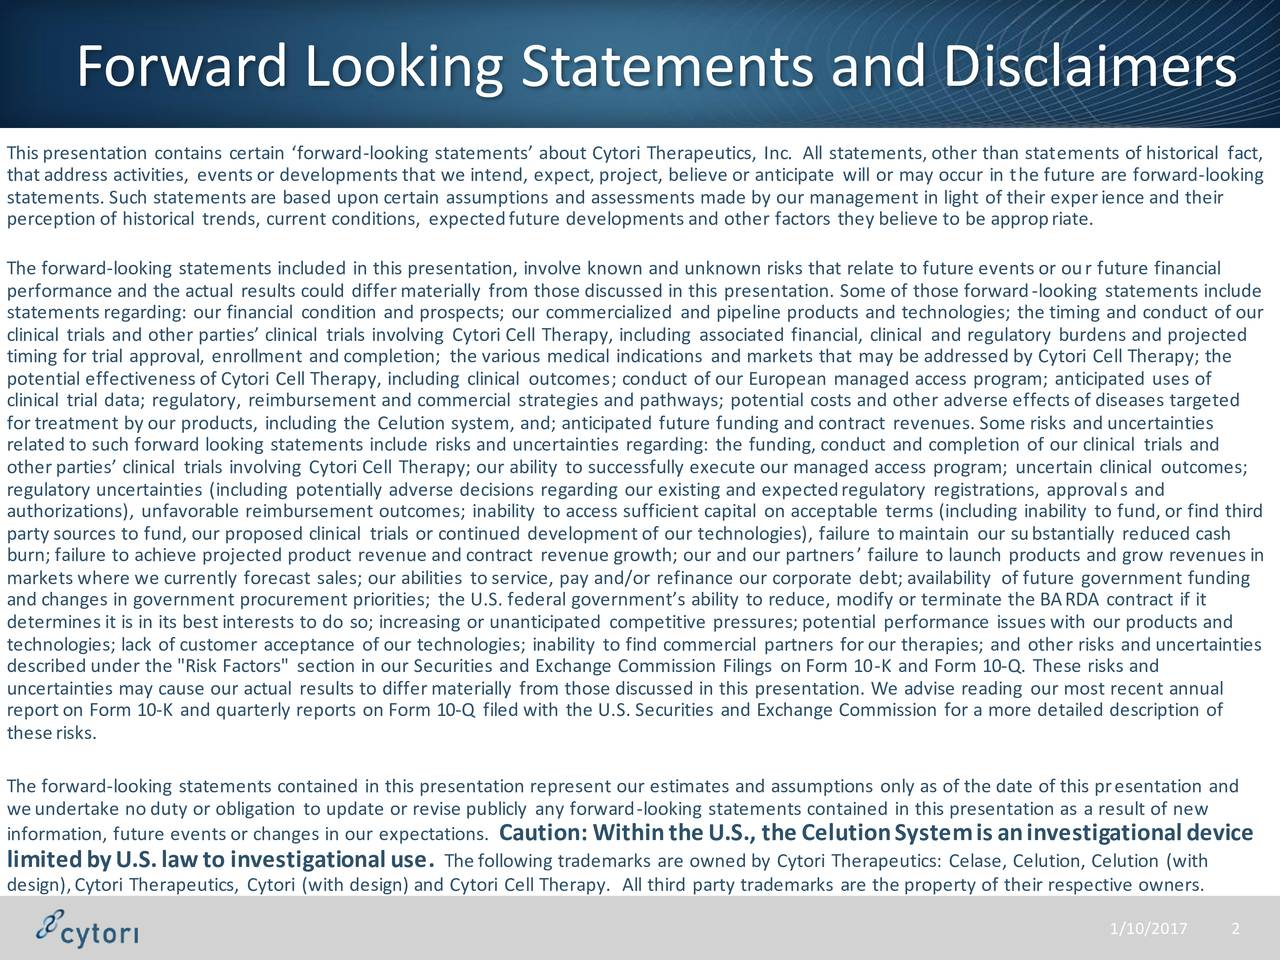 This presentation contains certain forward-looking statements about Cytori Therapeutics, Inc. All statements, other than statements of historical fact, that address activities, events or developments that we intend, expect, project, believe or anticipate will or may occur in the future are forward-looking statements. Such statements are based upon certain assumptions and assessments made by our management in light of their experience and their perception of historical trends, current conditions, expectedfuture developments and other factors they believe to be appropriate. The forward-looking statements included in this presentation, involve known and unknown risks that relate to future events or our future financial performance and the actual results could differmaterially from those discussed in this presentation. Some of those forward-looking statements include statements regarding: our financial condition and prospects; our commercialized and pipeline products and technologies; the timing and conduct of our timing for trial approval, enrollment and completion; the various medical indications and markets that may be addressed by Cytori Cell Therapy; thend projected potential effectiveness of Cytori Cell Therapy, including clinical outcomes; conduct of our European managed access program; anticipated uses of clinical trial data; regulatory, reimbursement and commercial strategies and pathways; potential costs and other adverse effects of diseases targeted fortreatment by oOTHERoducts, including the Celution system, and; anticipated future funding and contract revenues. Some risks and uncertainties related to such forward looking statements include risks and uncertainties regarding: the funding, conduct and completion of our clinical trials and otherparties clinical trials involving Cytori Cell Therapy; our ability to successfully execute our managed access program; uncertain clinical outcomes; regulatory uncertainties (including potentially adverse decisions regard